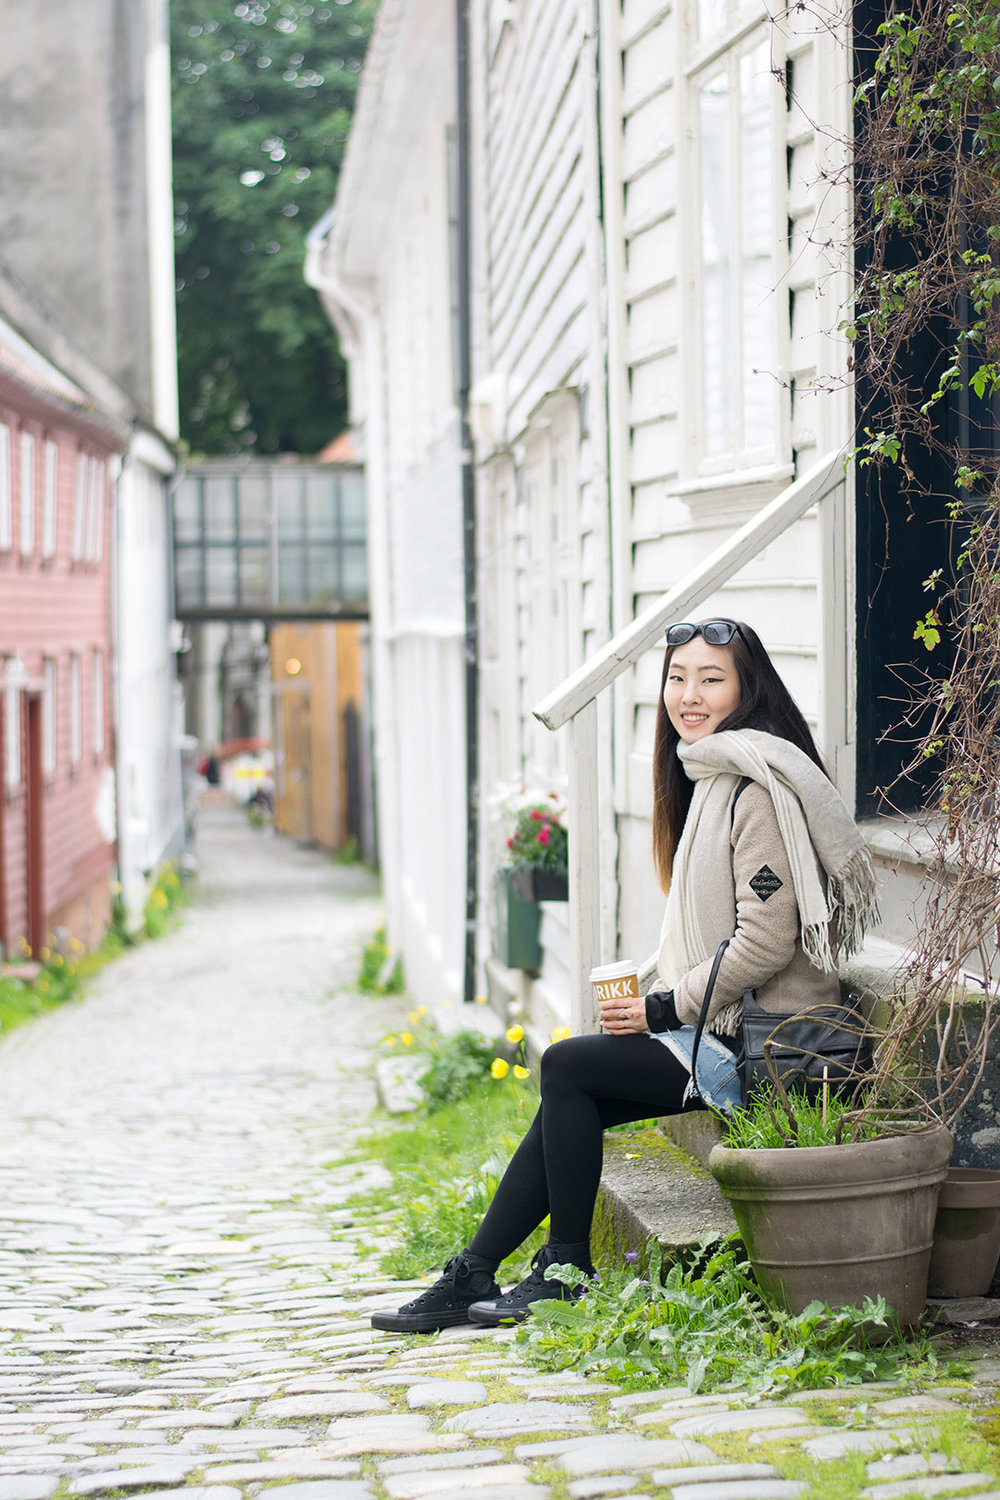 The mountainside of Bergen has the most quaint streets with homes and alleyways.